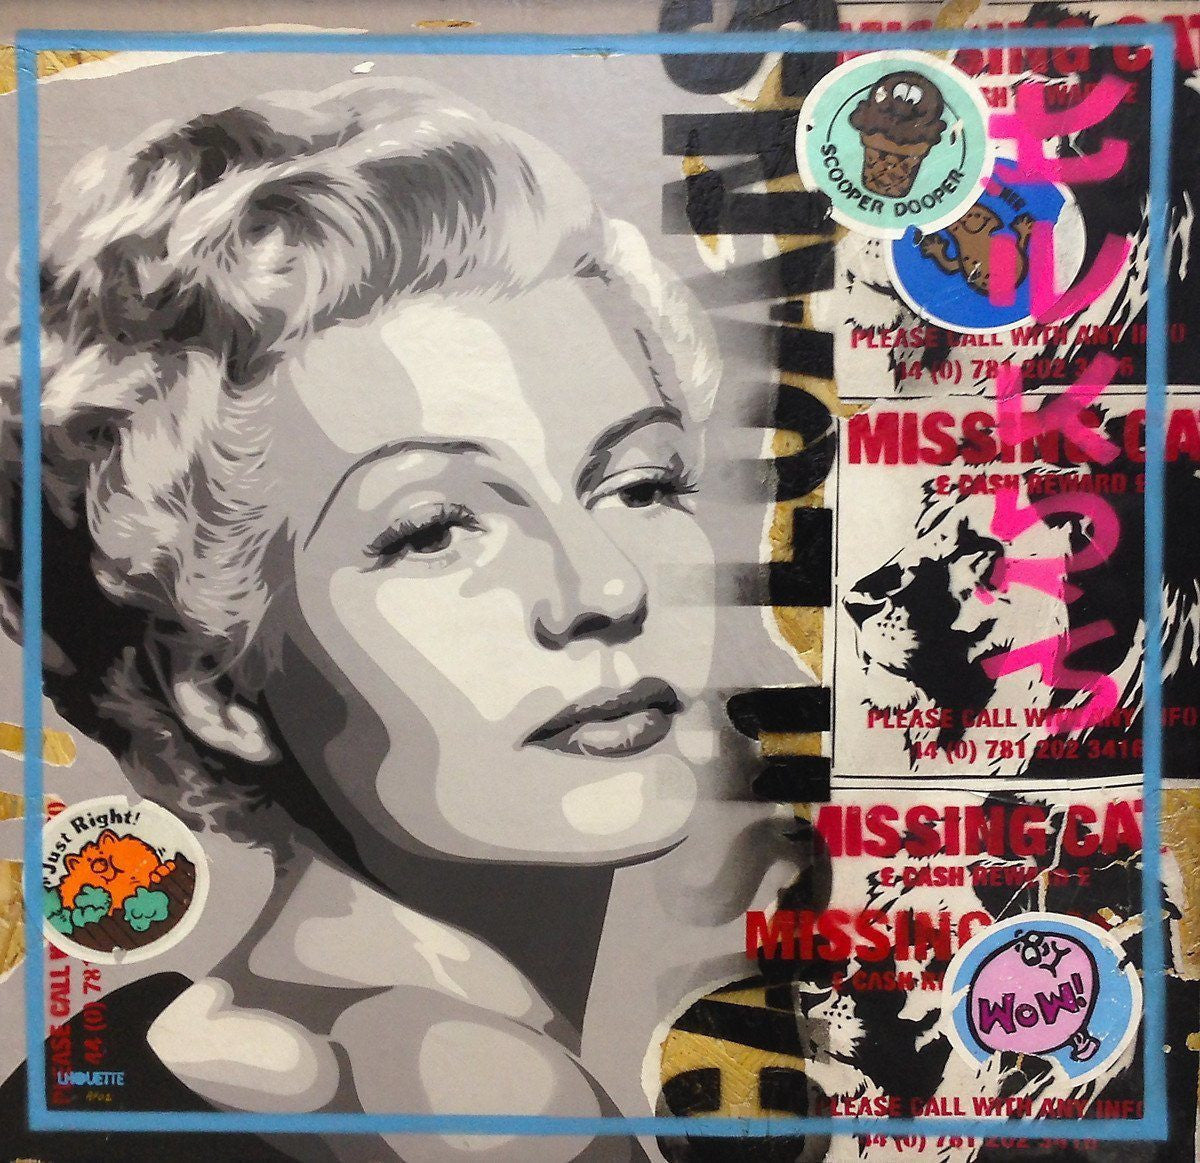 Paste Up - Rita - Limited Edition Lhouette